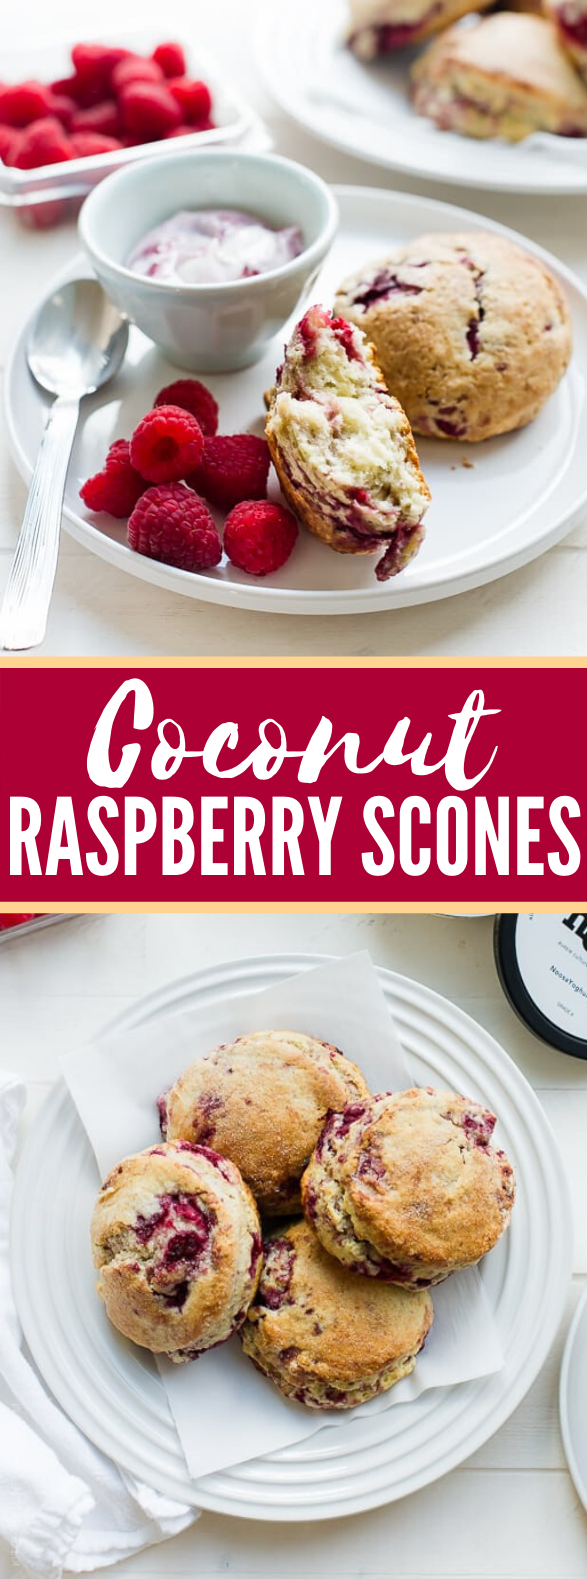 COCONUT RASPBERRY SCONES #desserts #bread